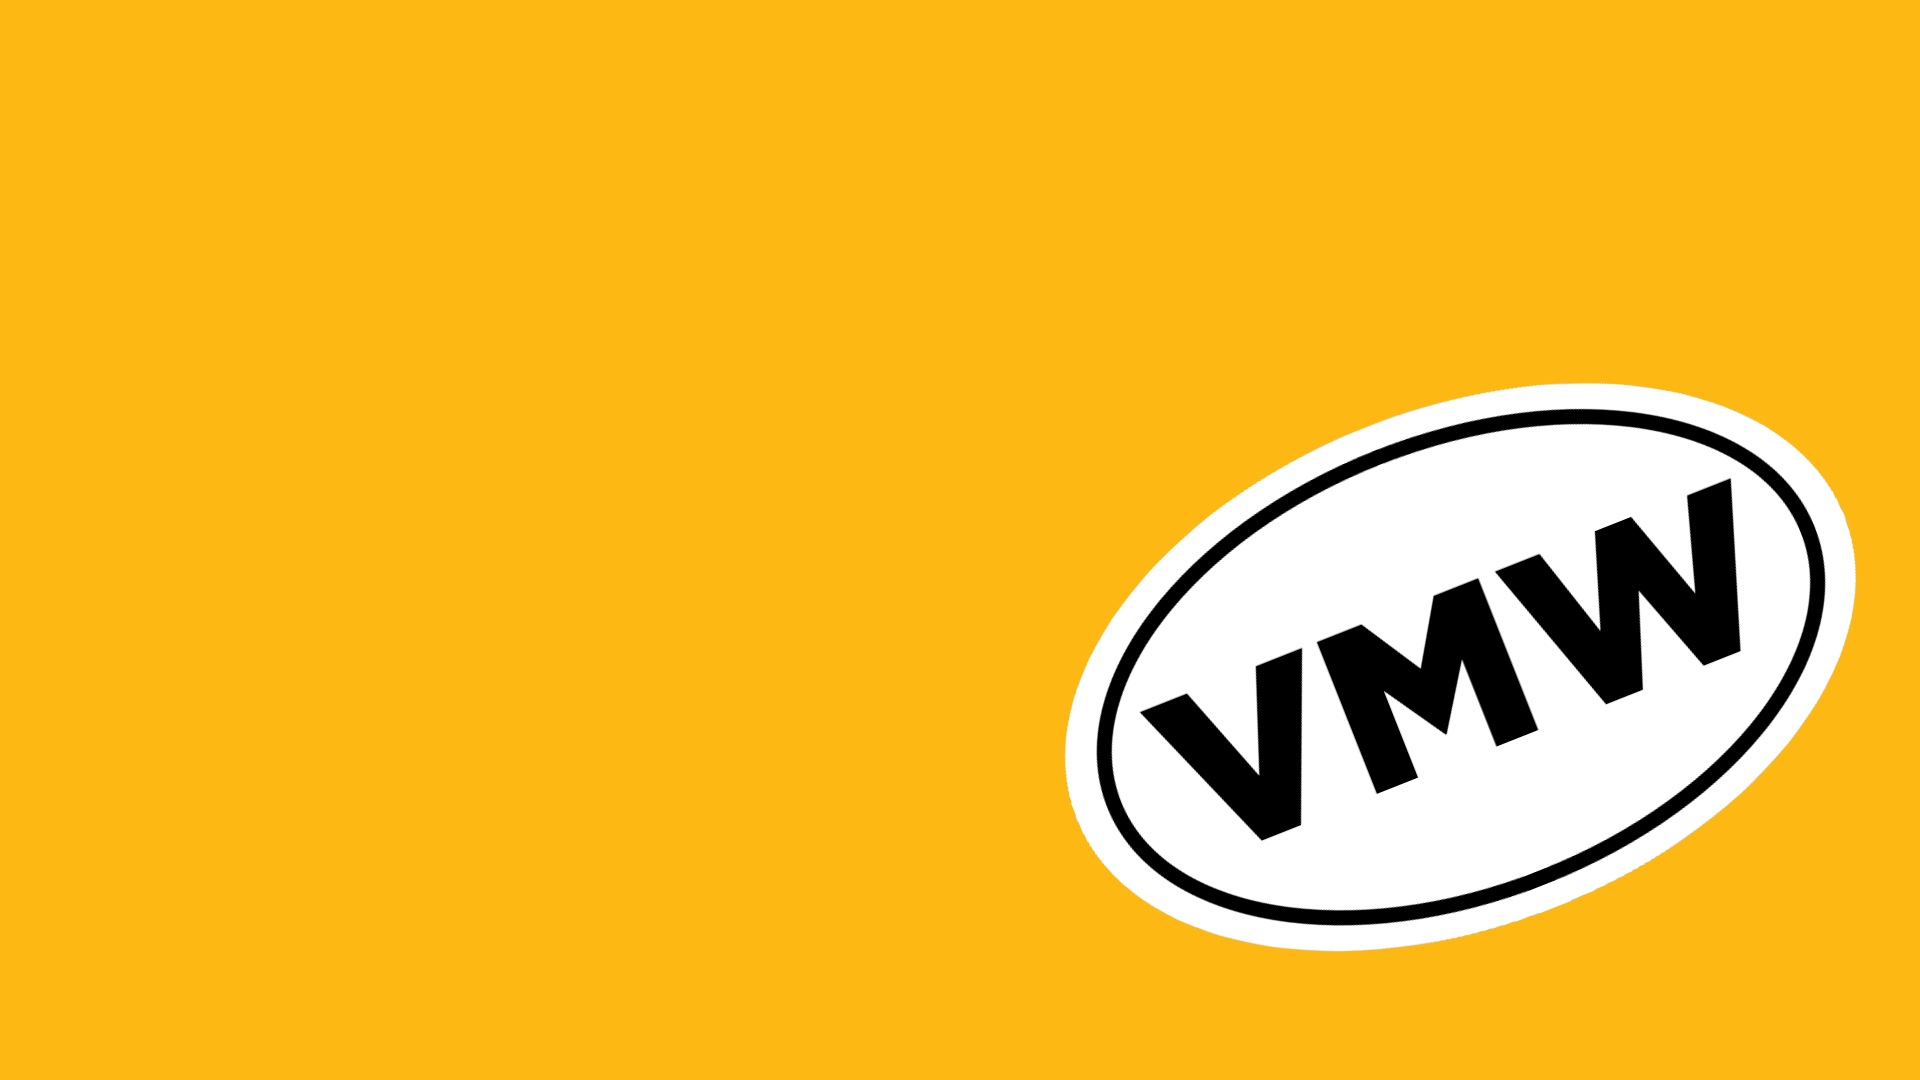 plain_vmware_orange3_vmw_sticker